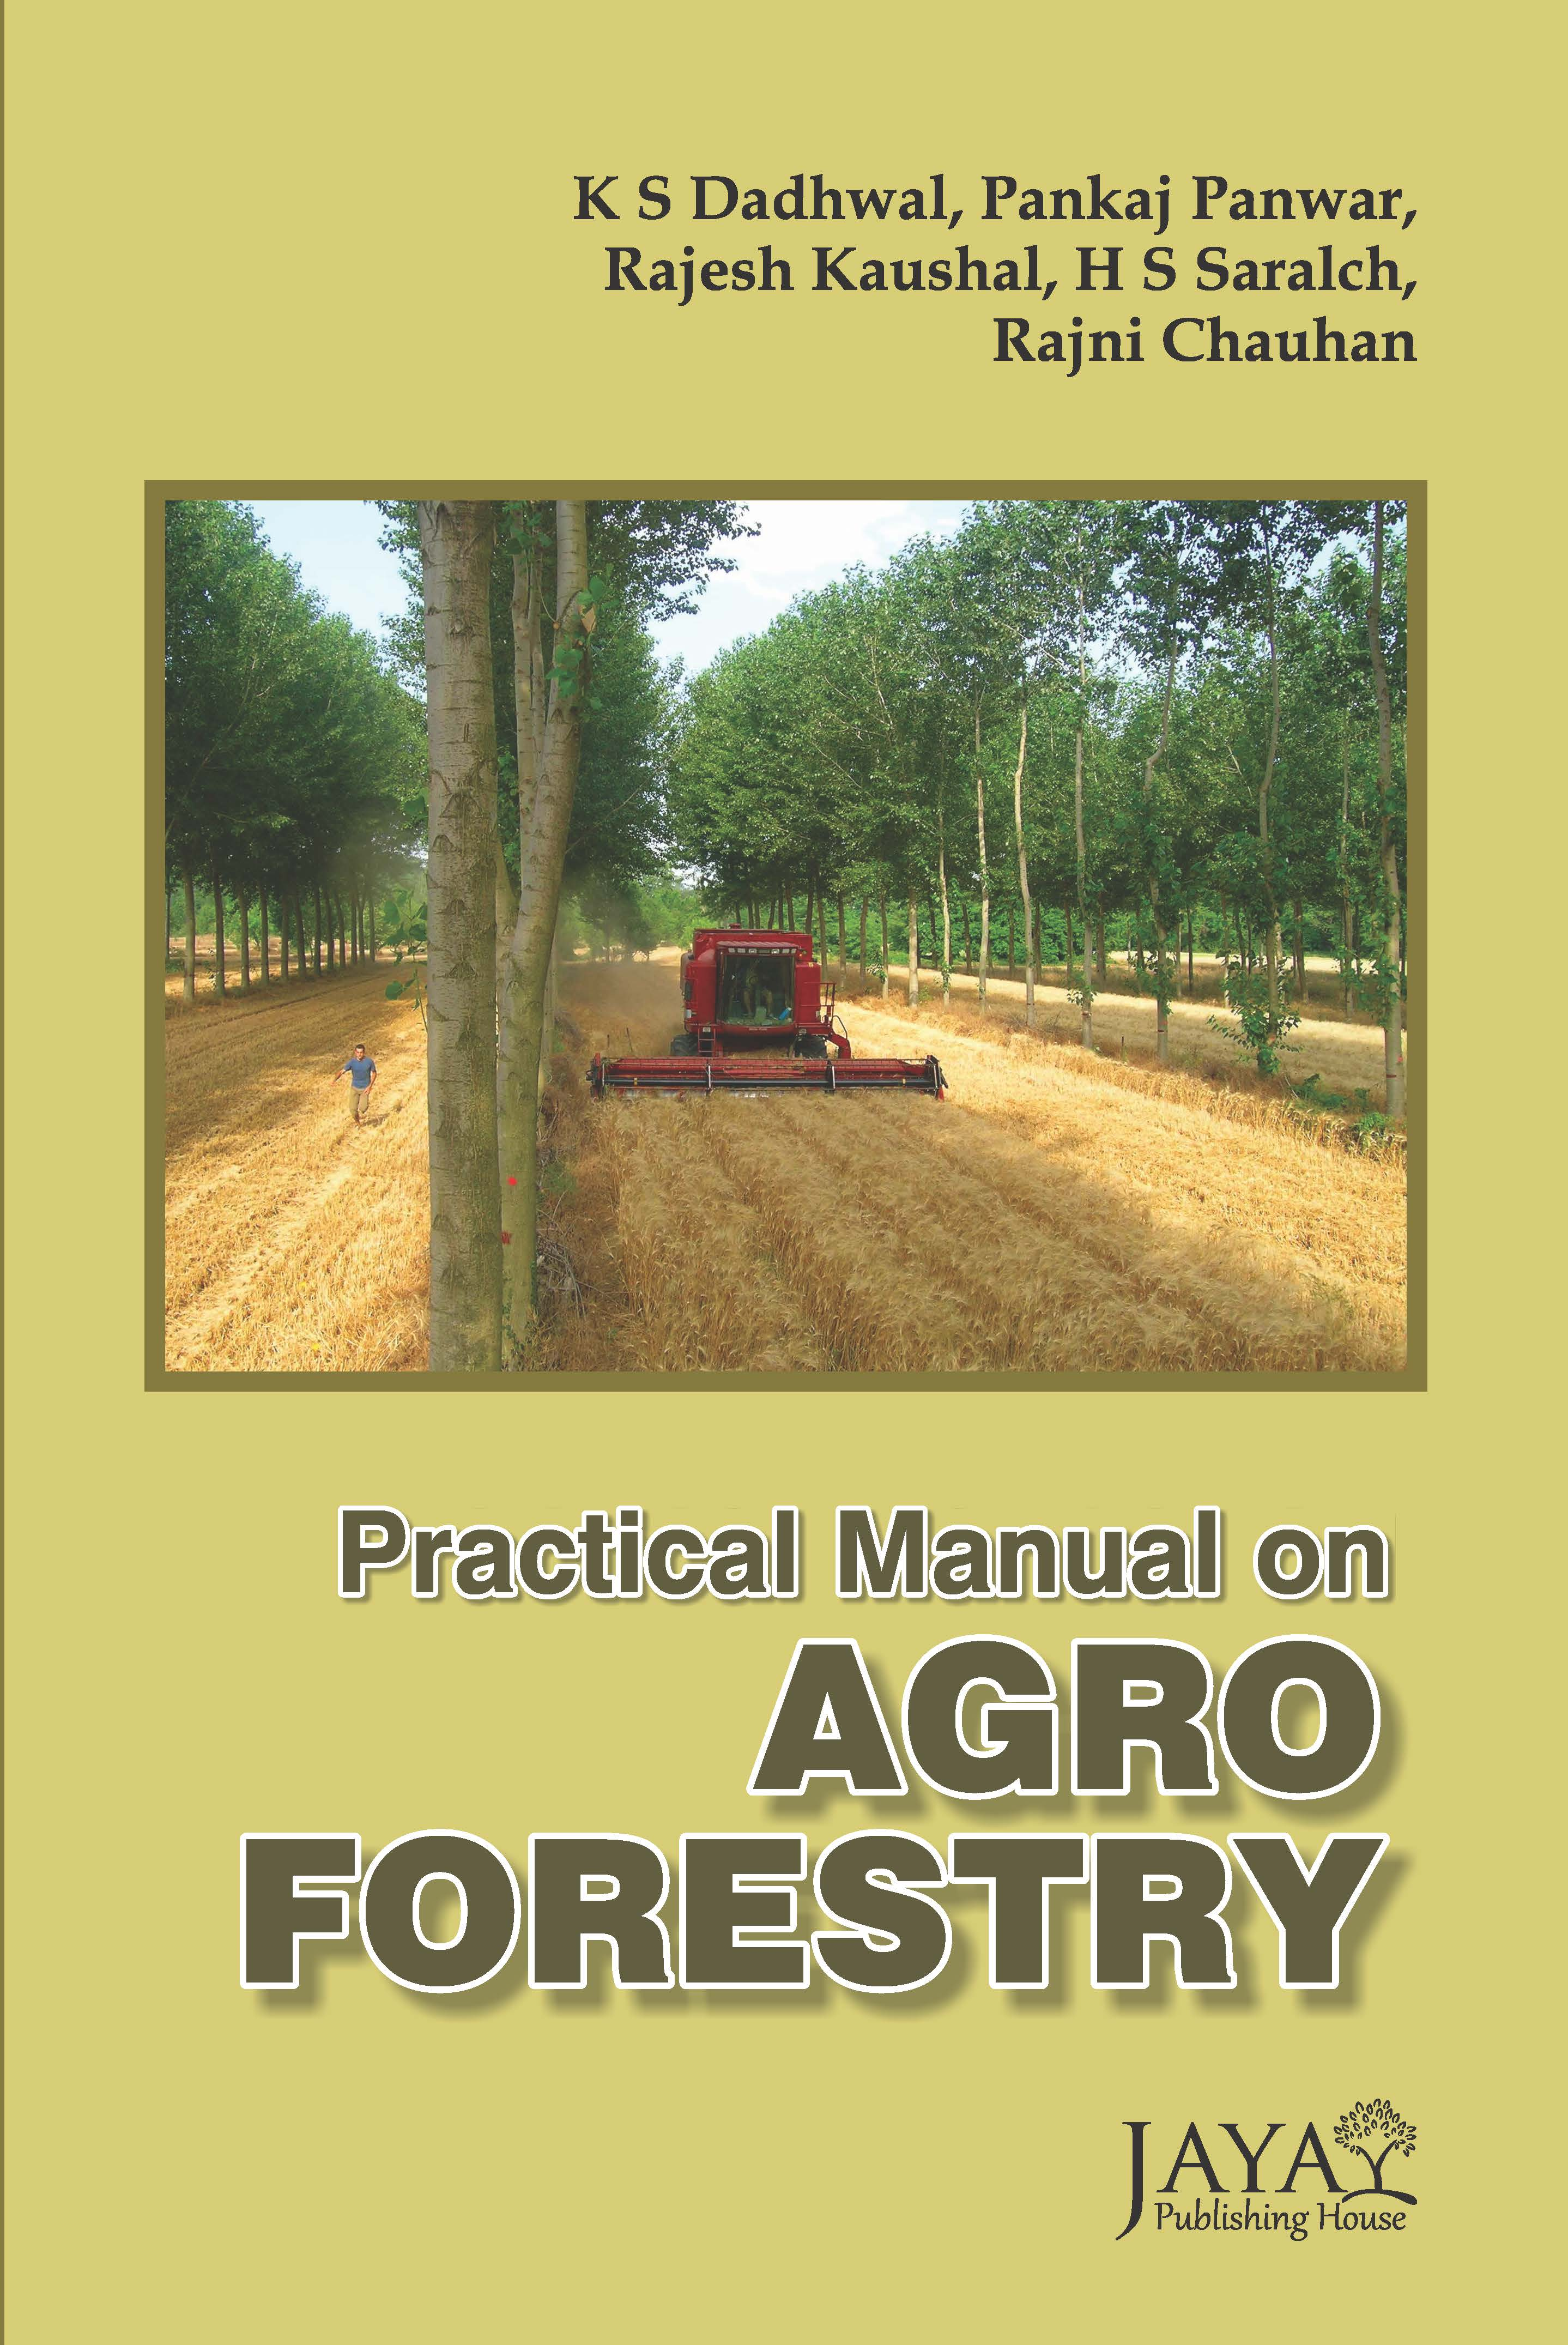 Practical Manual on Agro forestry